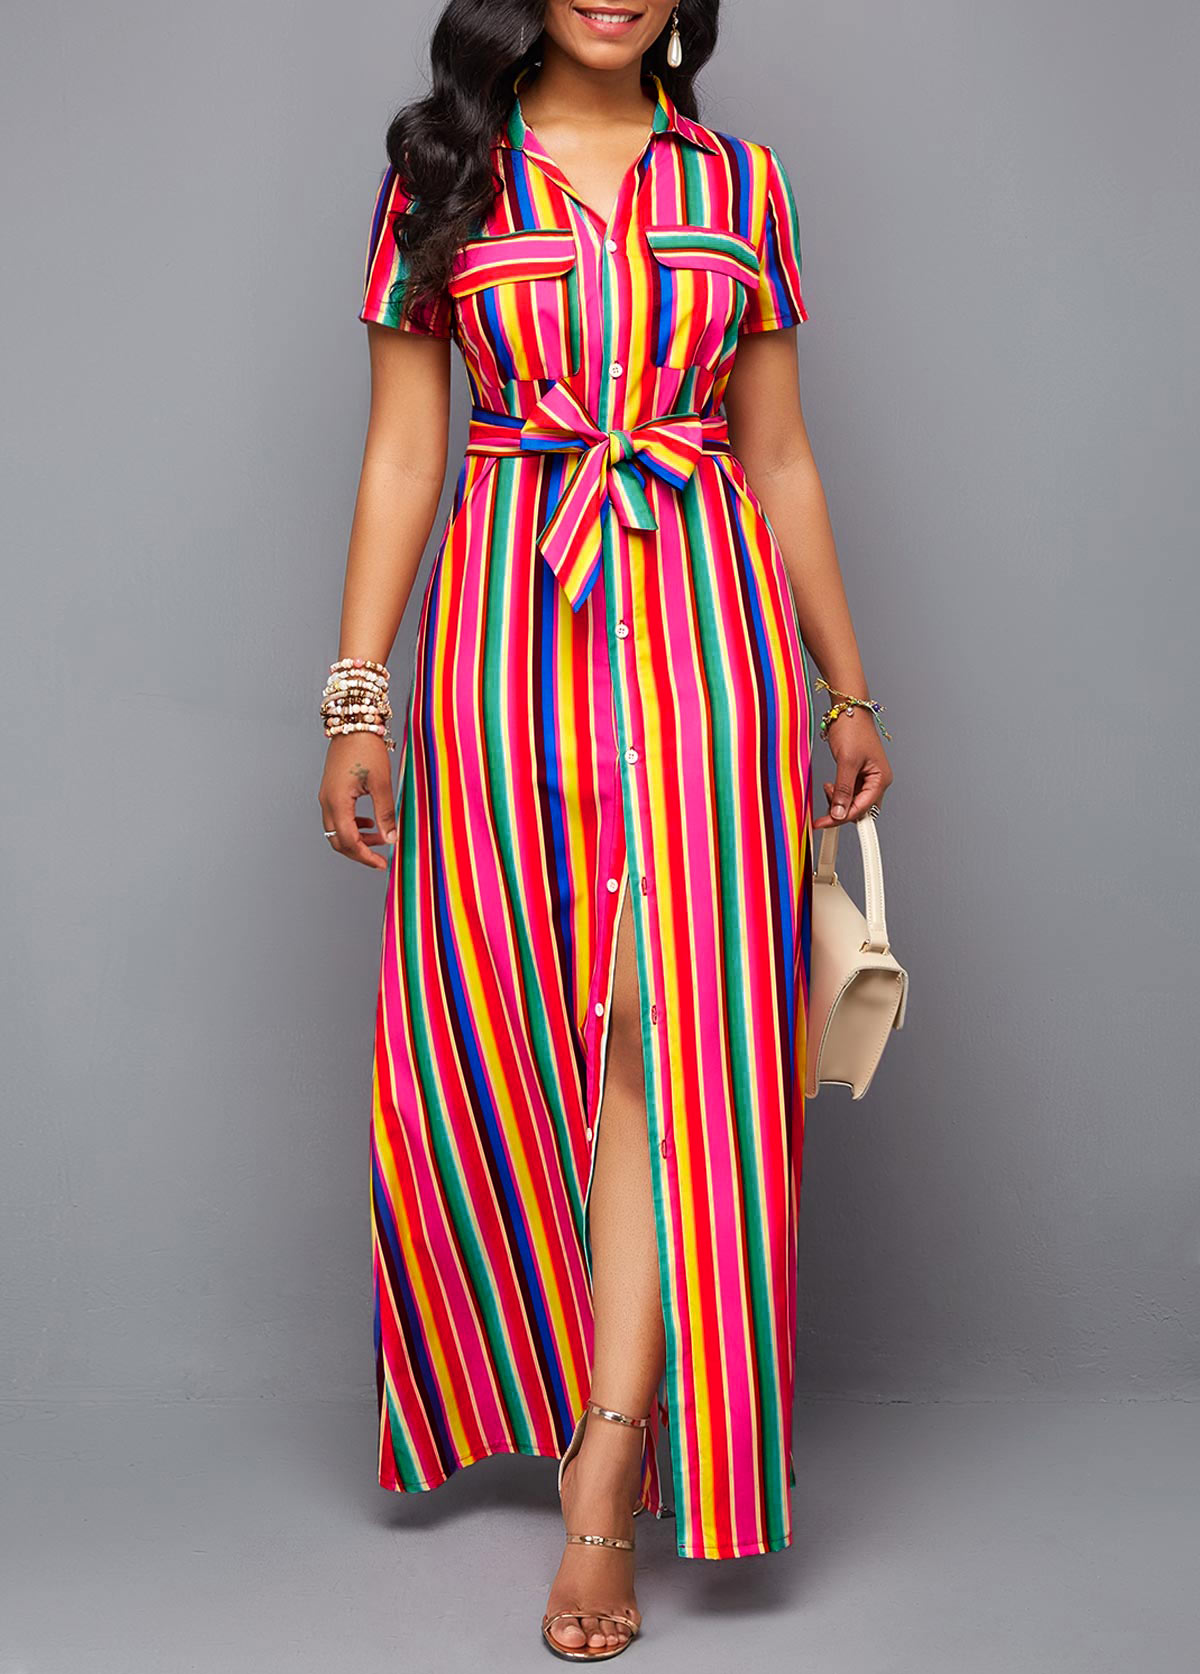 Belted Turndown Collar Button Up Rainbow Color Dress